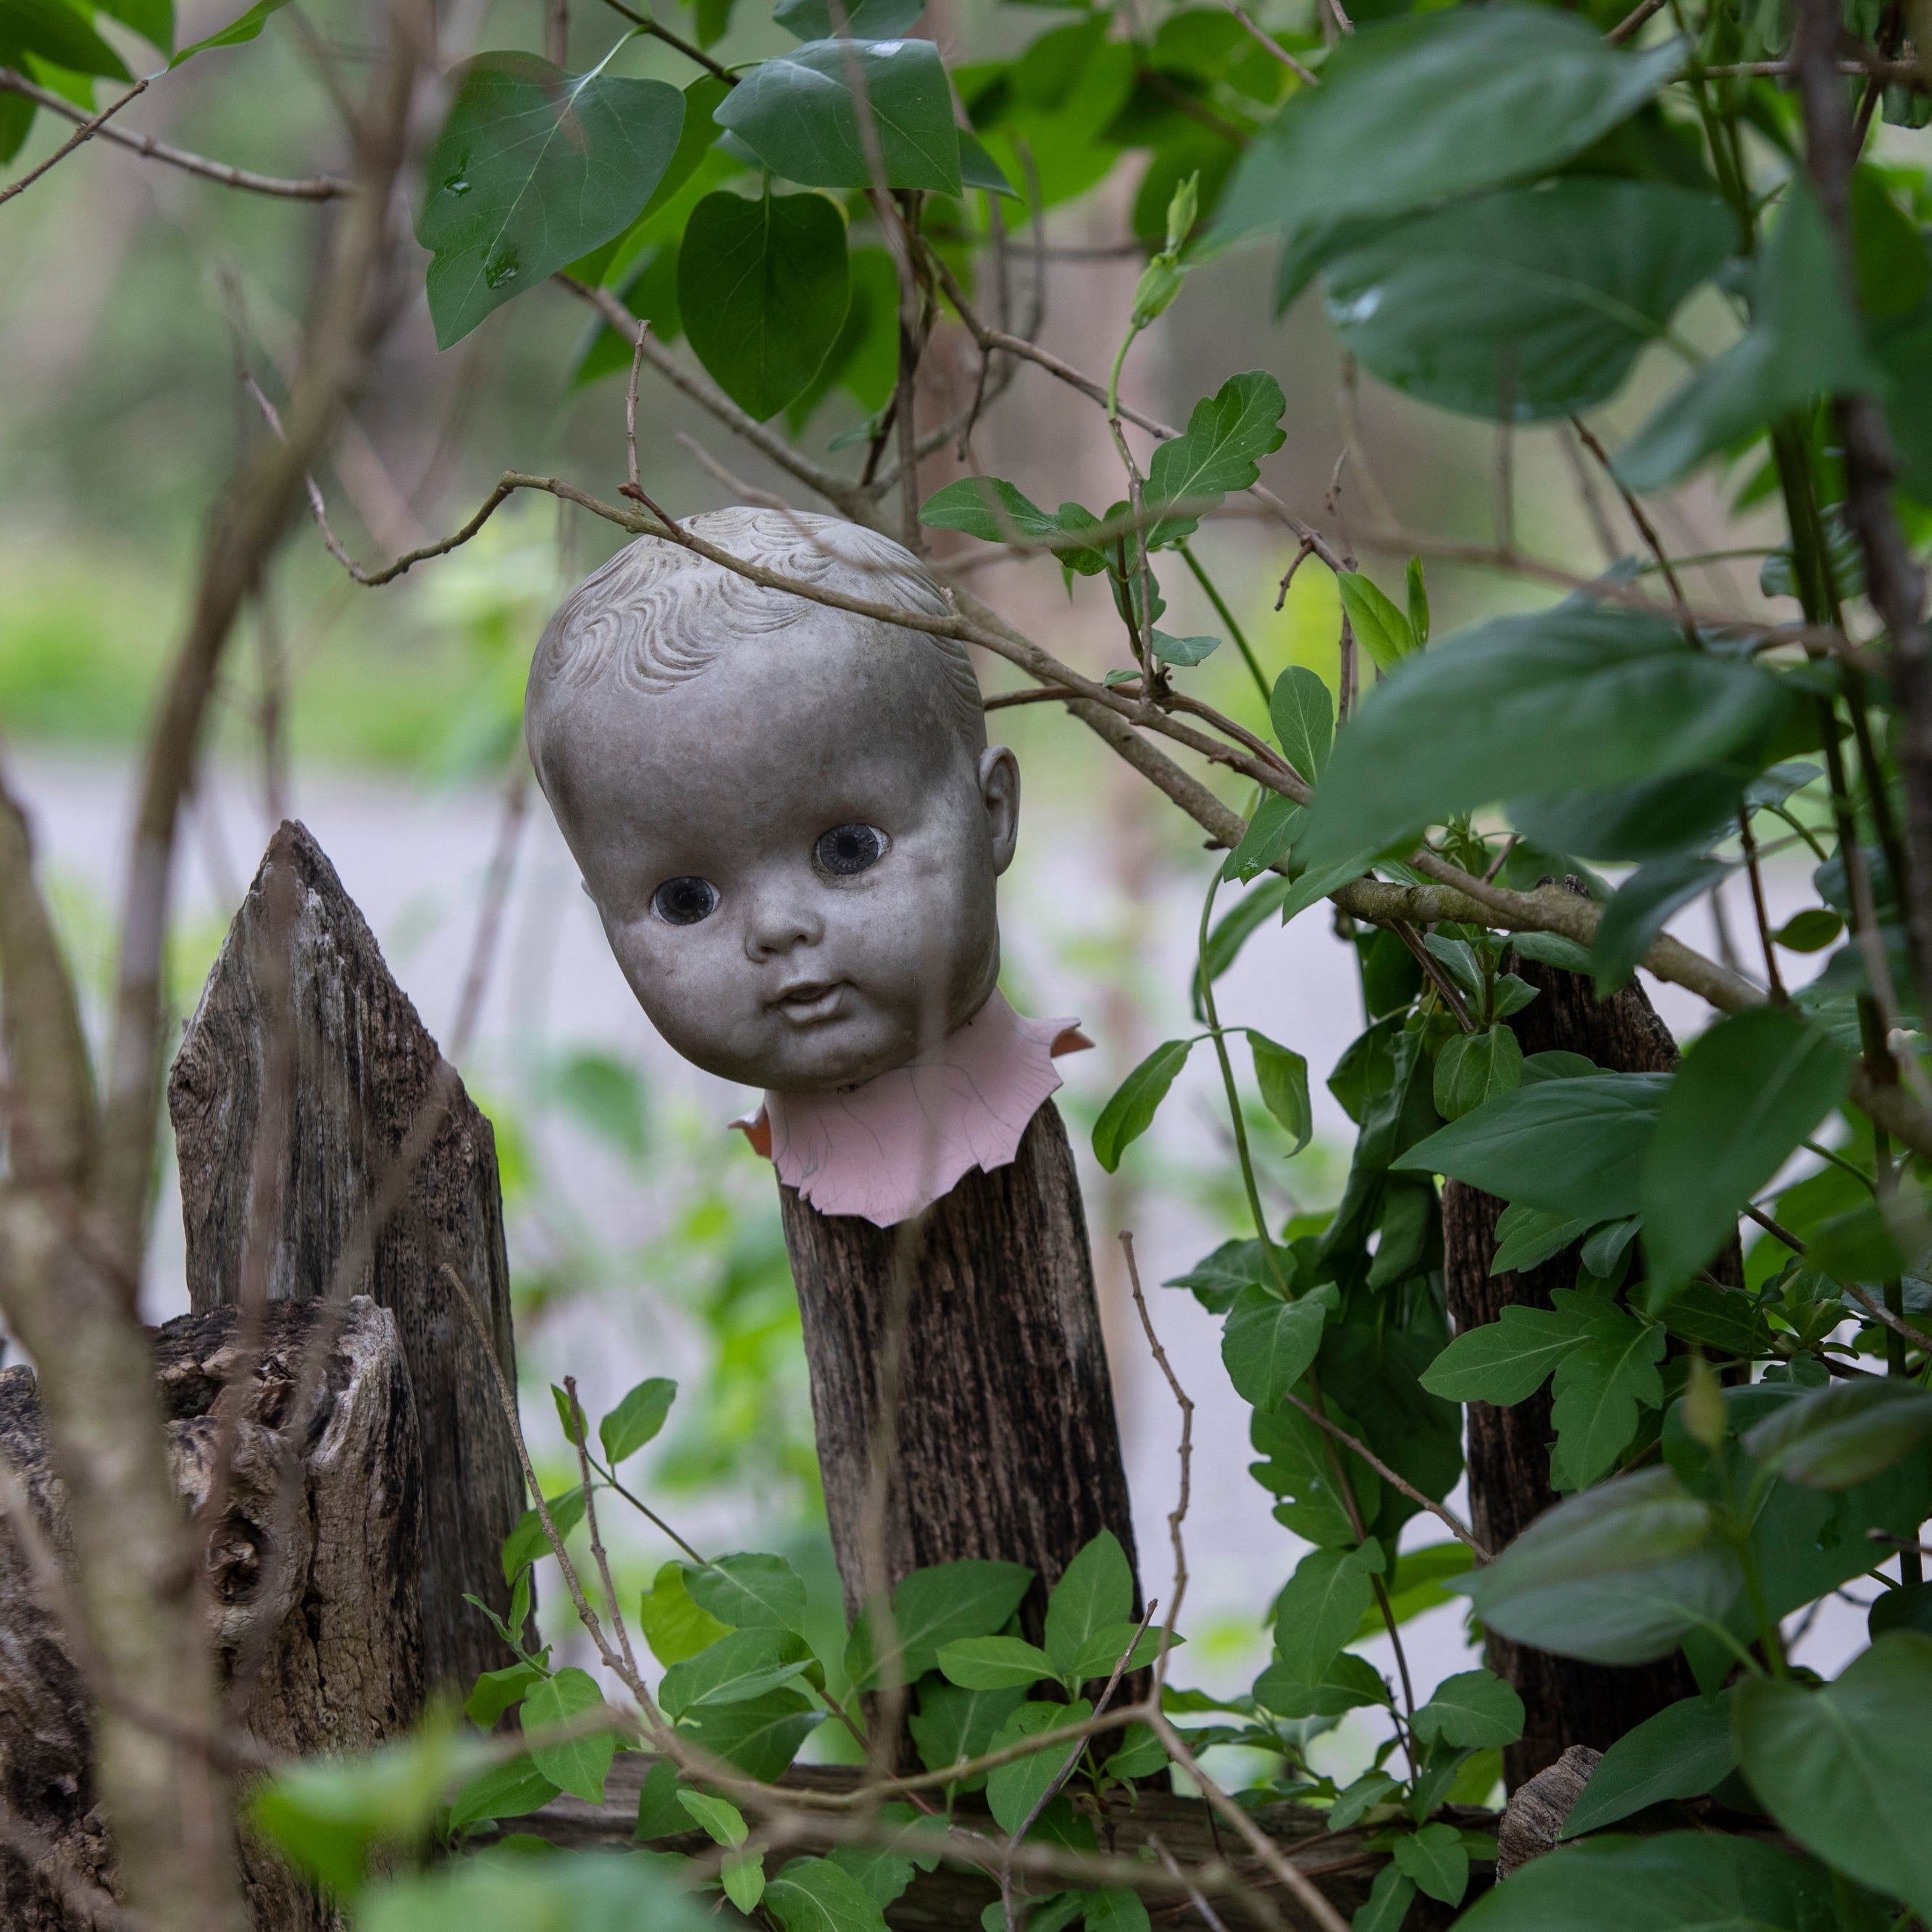 Welcome to the Home for Wayward Babydolls, a creepy resting place for discarded toys